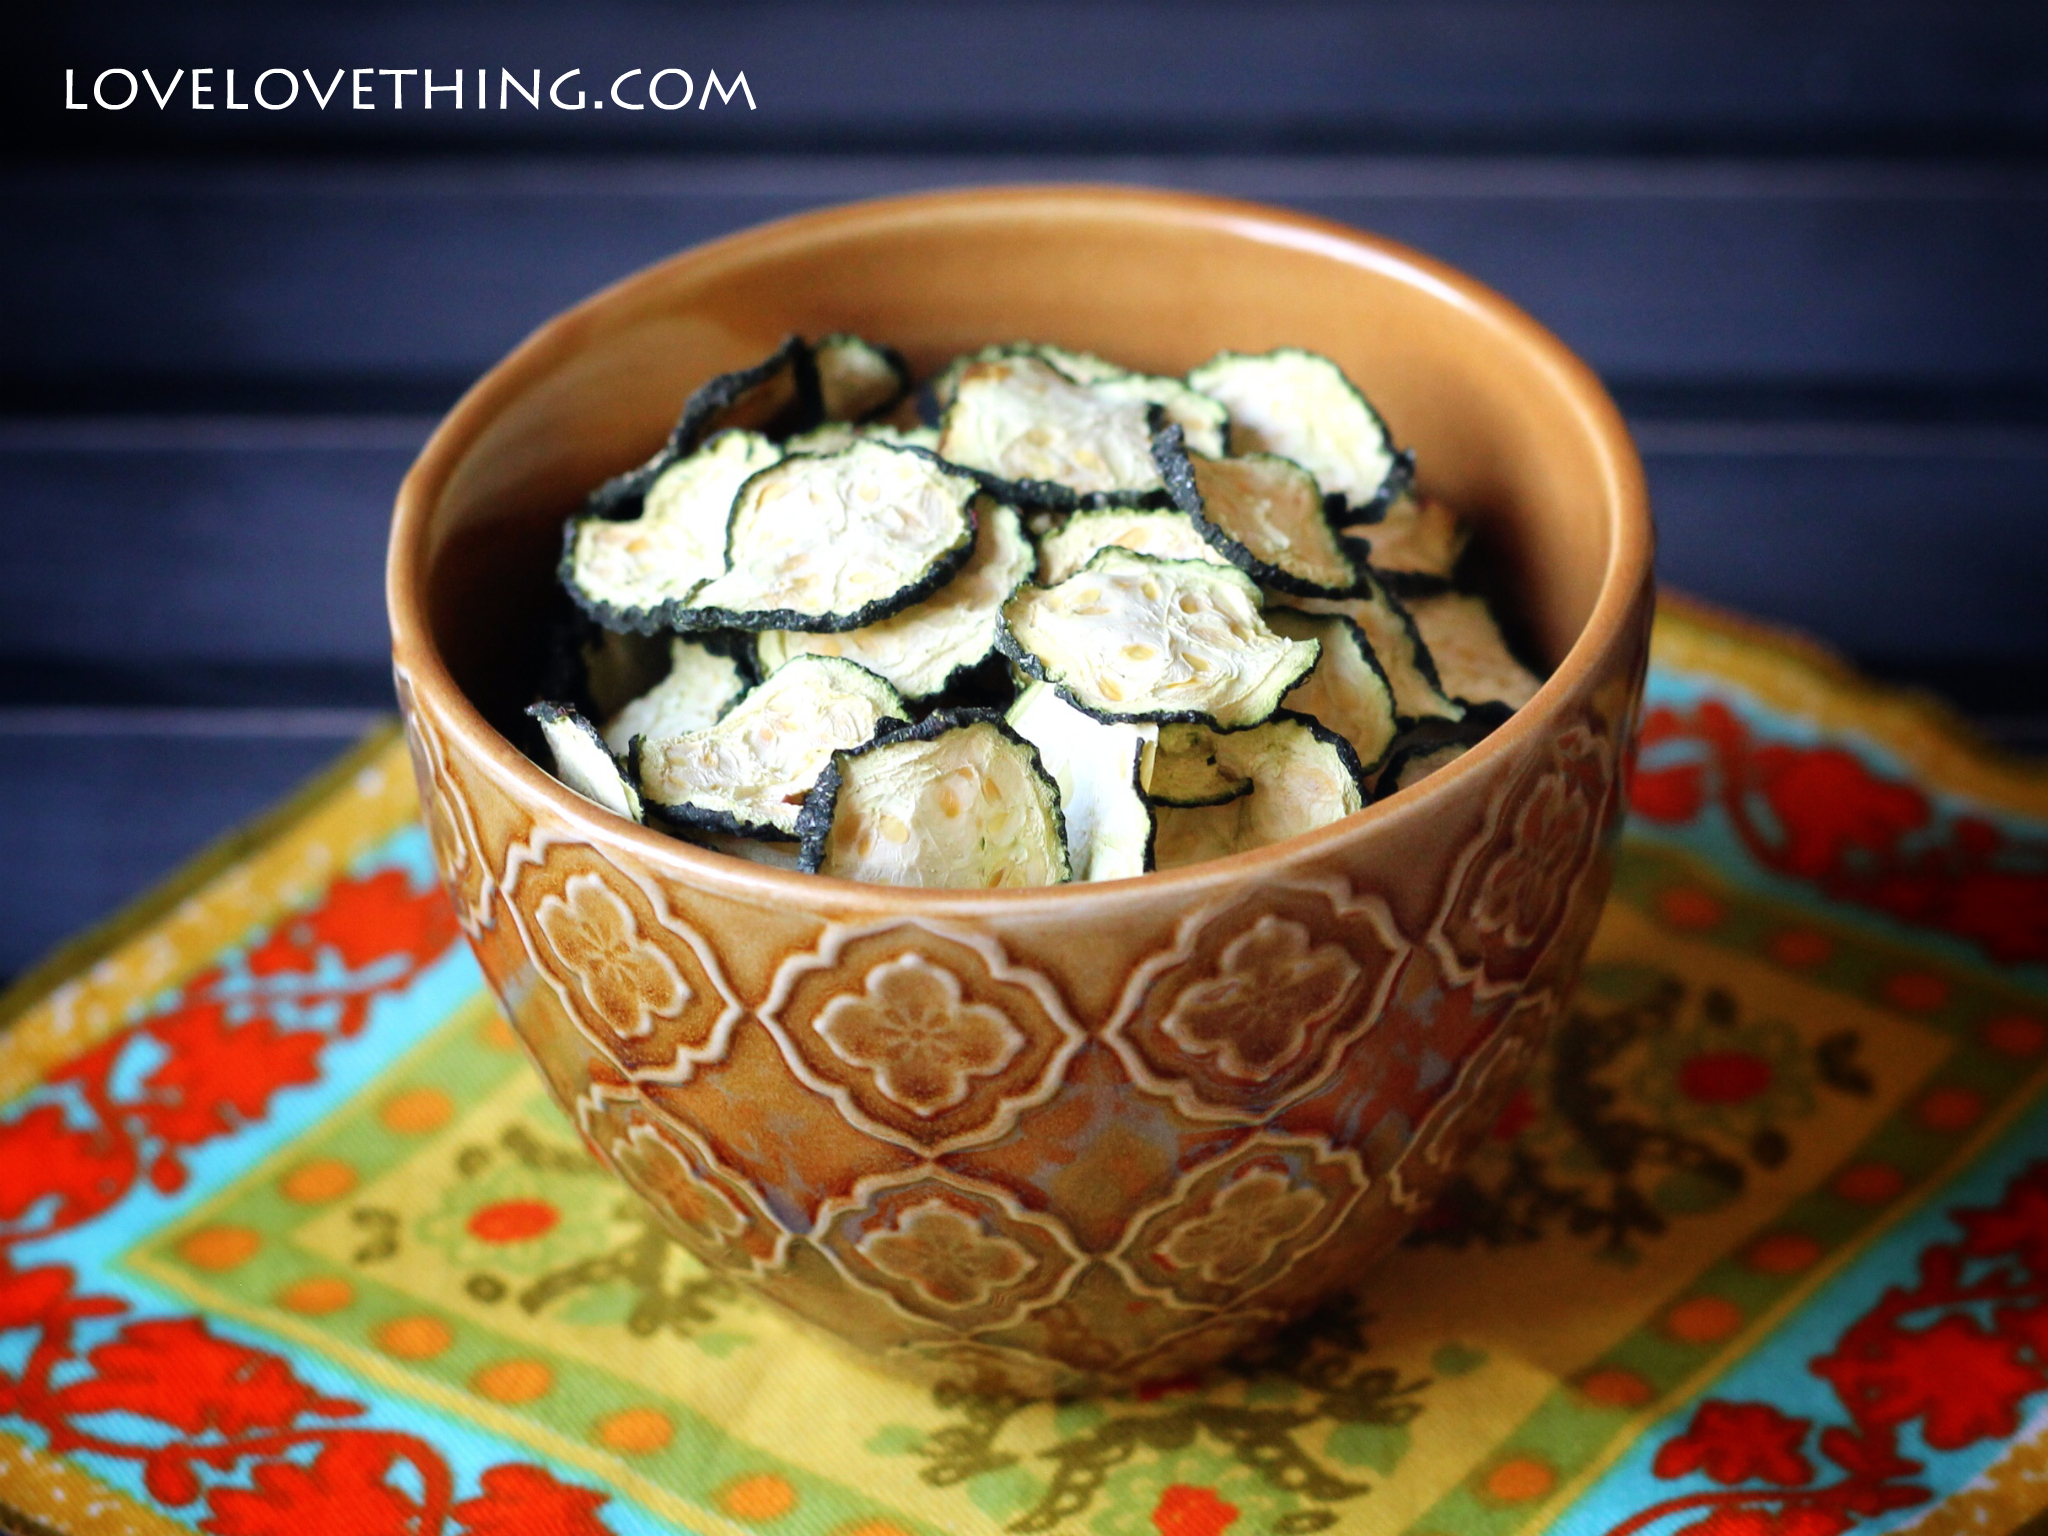 Dehydrated zucchini chips - so simple and healthy and you can customize the flavor to suit your tastes.